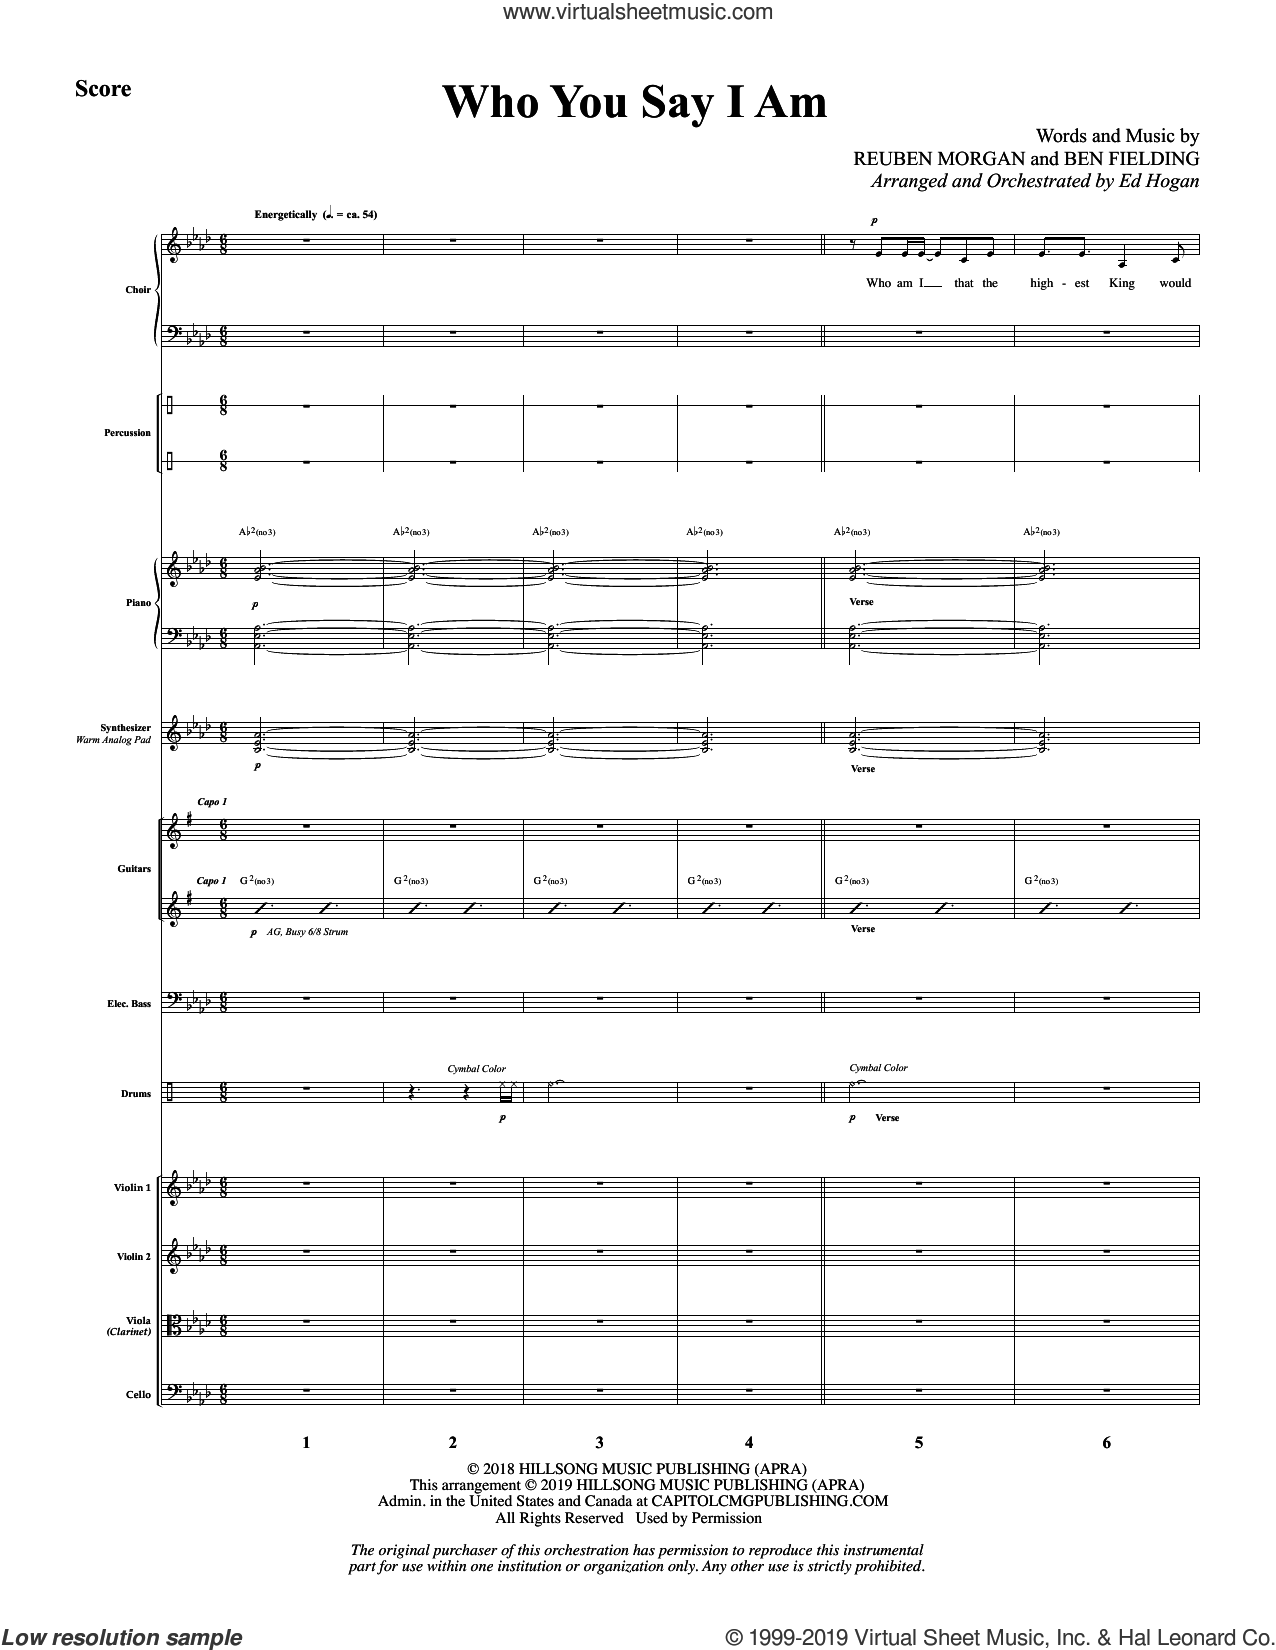 Who You Say I Am (arr. Ed Hogan) (COMPLETE) sheet music for orchestra/band by Hillsong Worship, Ben Fielding, Ed Hogan and Reuben Morgan, intermediate skill level